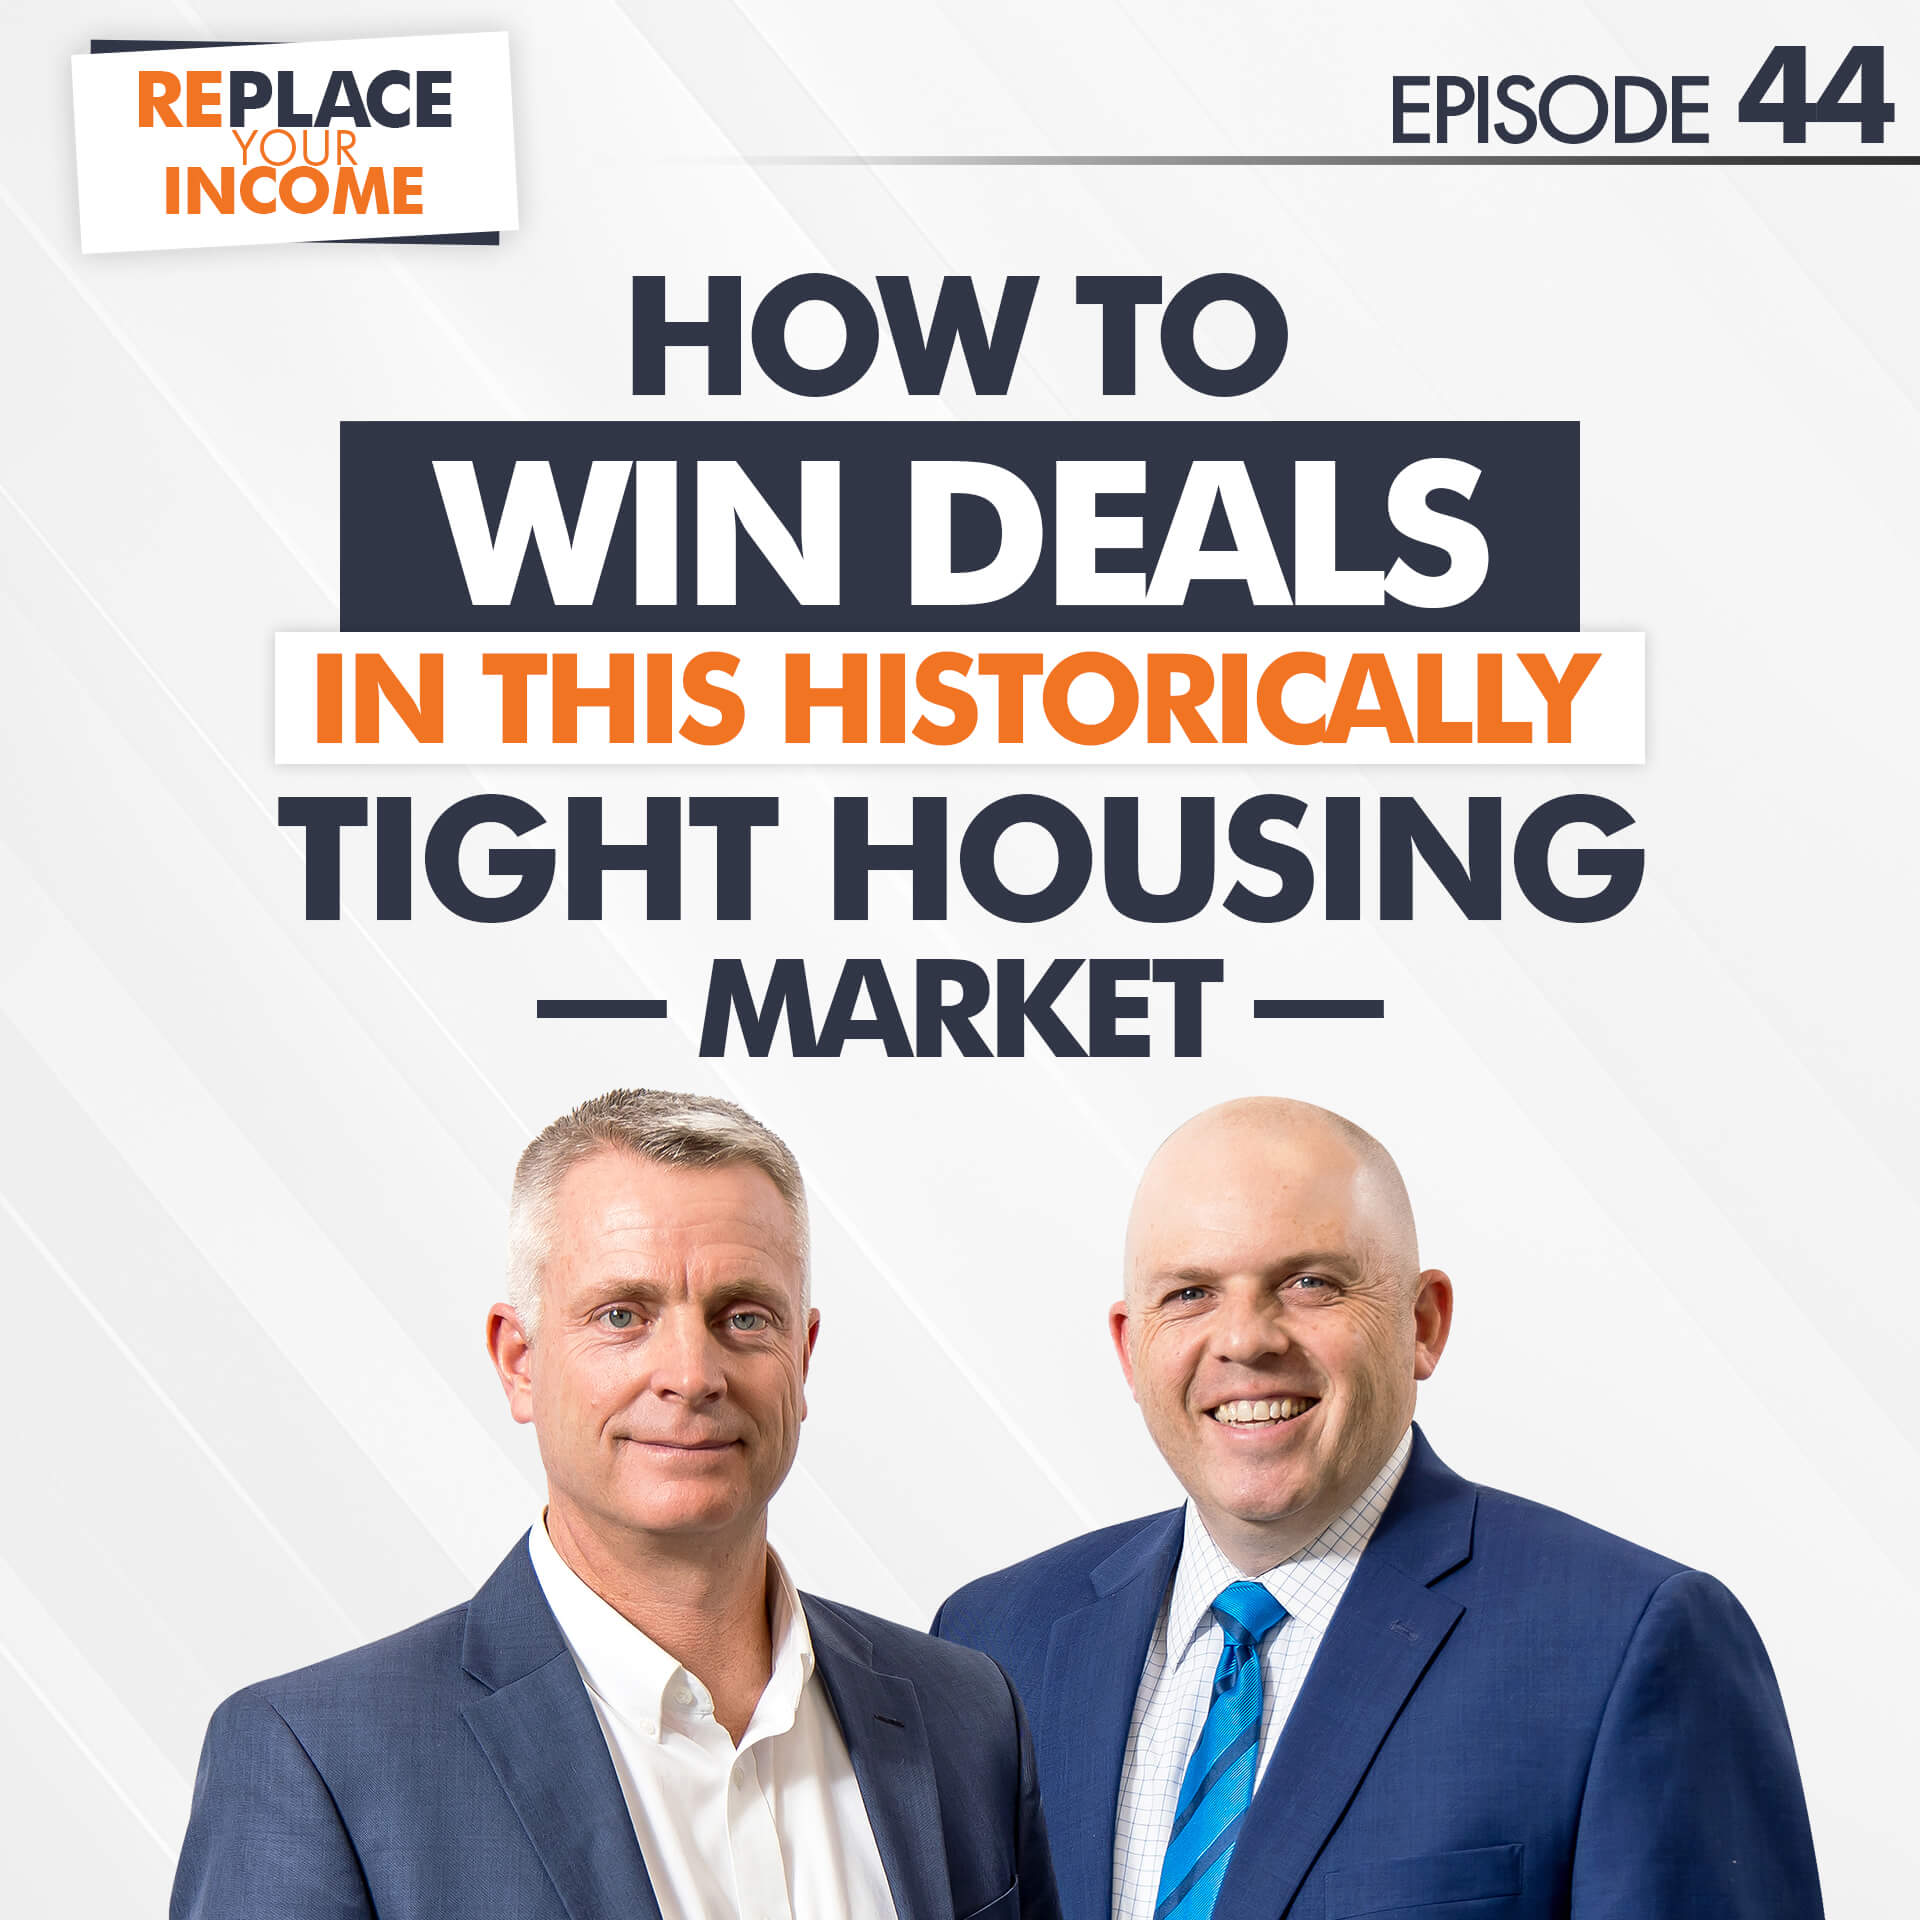 How To Win Deals In This Historically Tight Housing Market